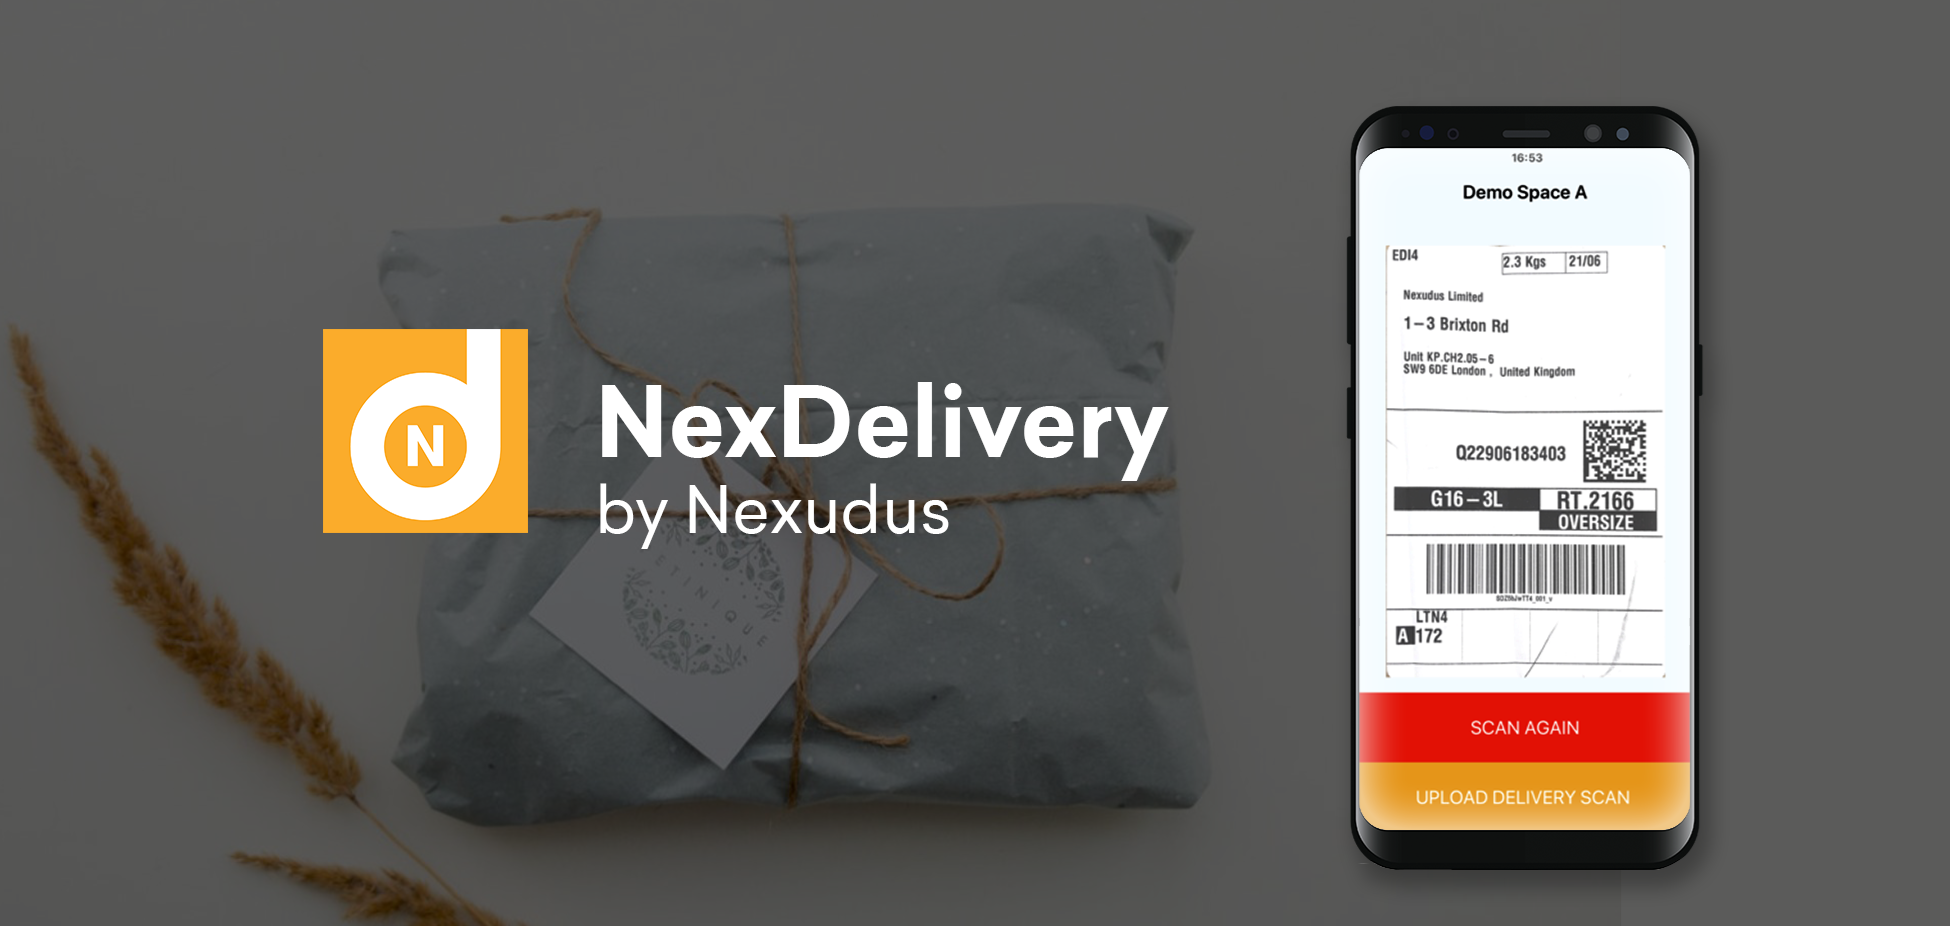 Your NexDelivery has arrived!